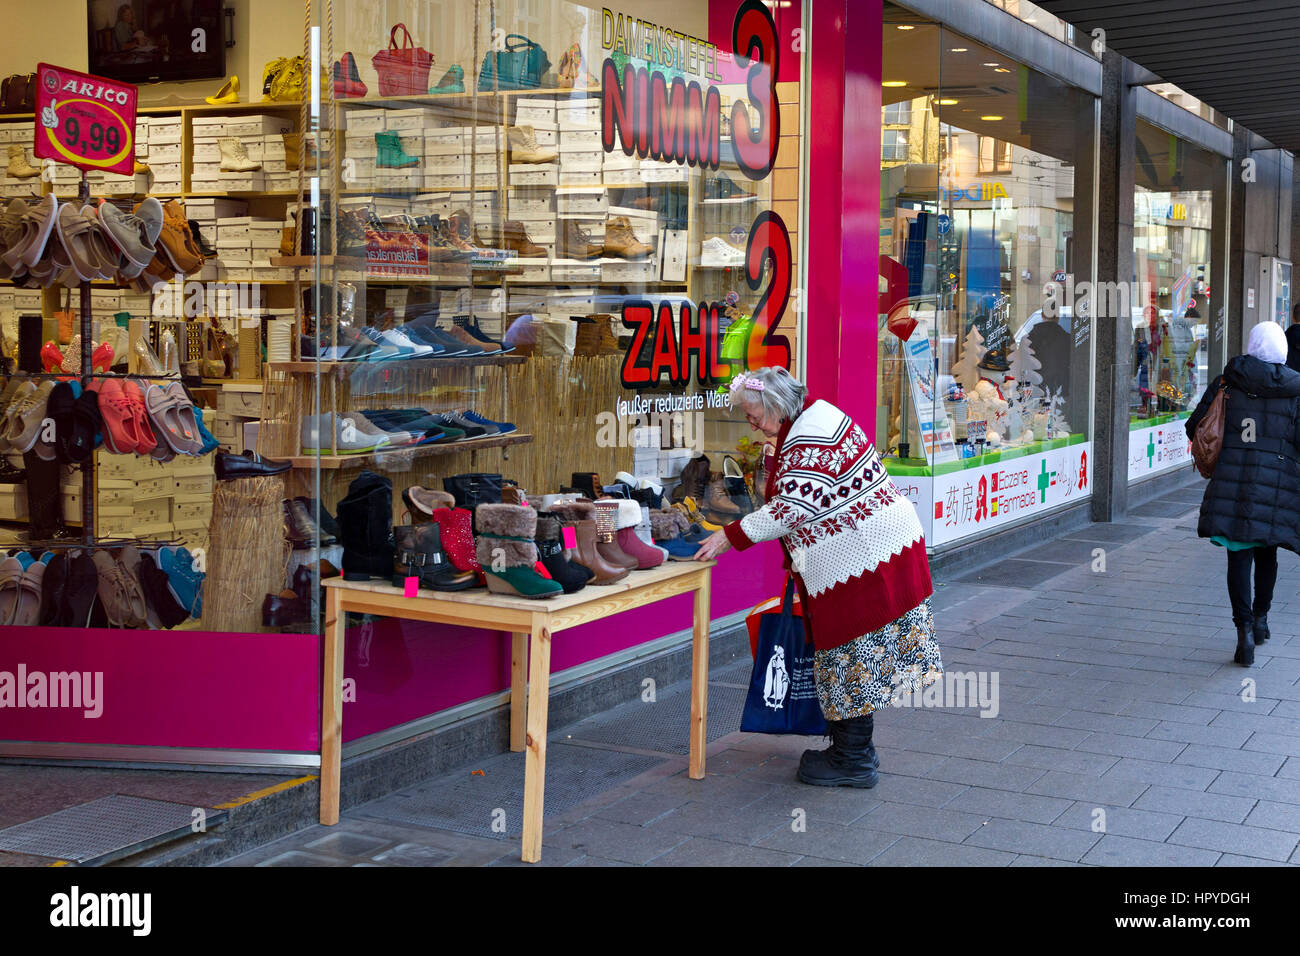 Superior Elderly Lady Looking At Reduced Price Shoes Outside A Shoe Shop, Munich,  Upper Bavaria, Germany, Europe